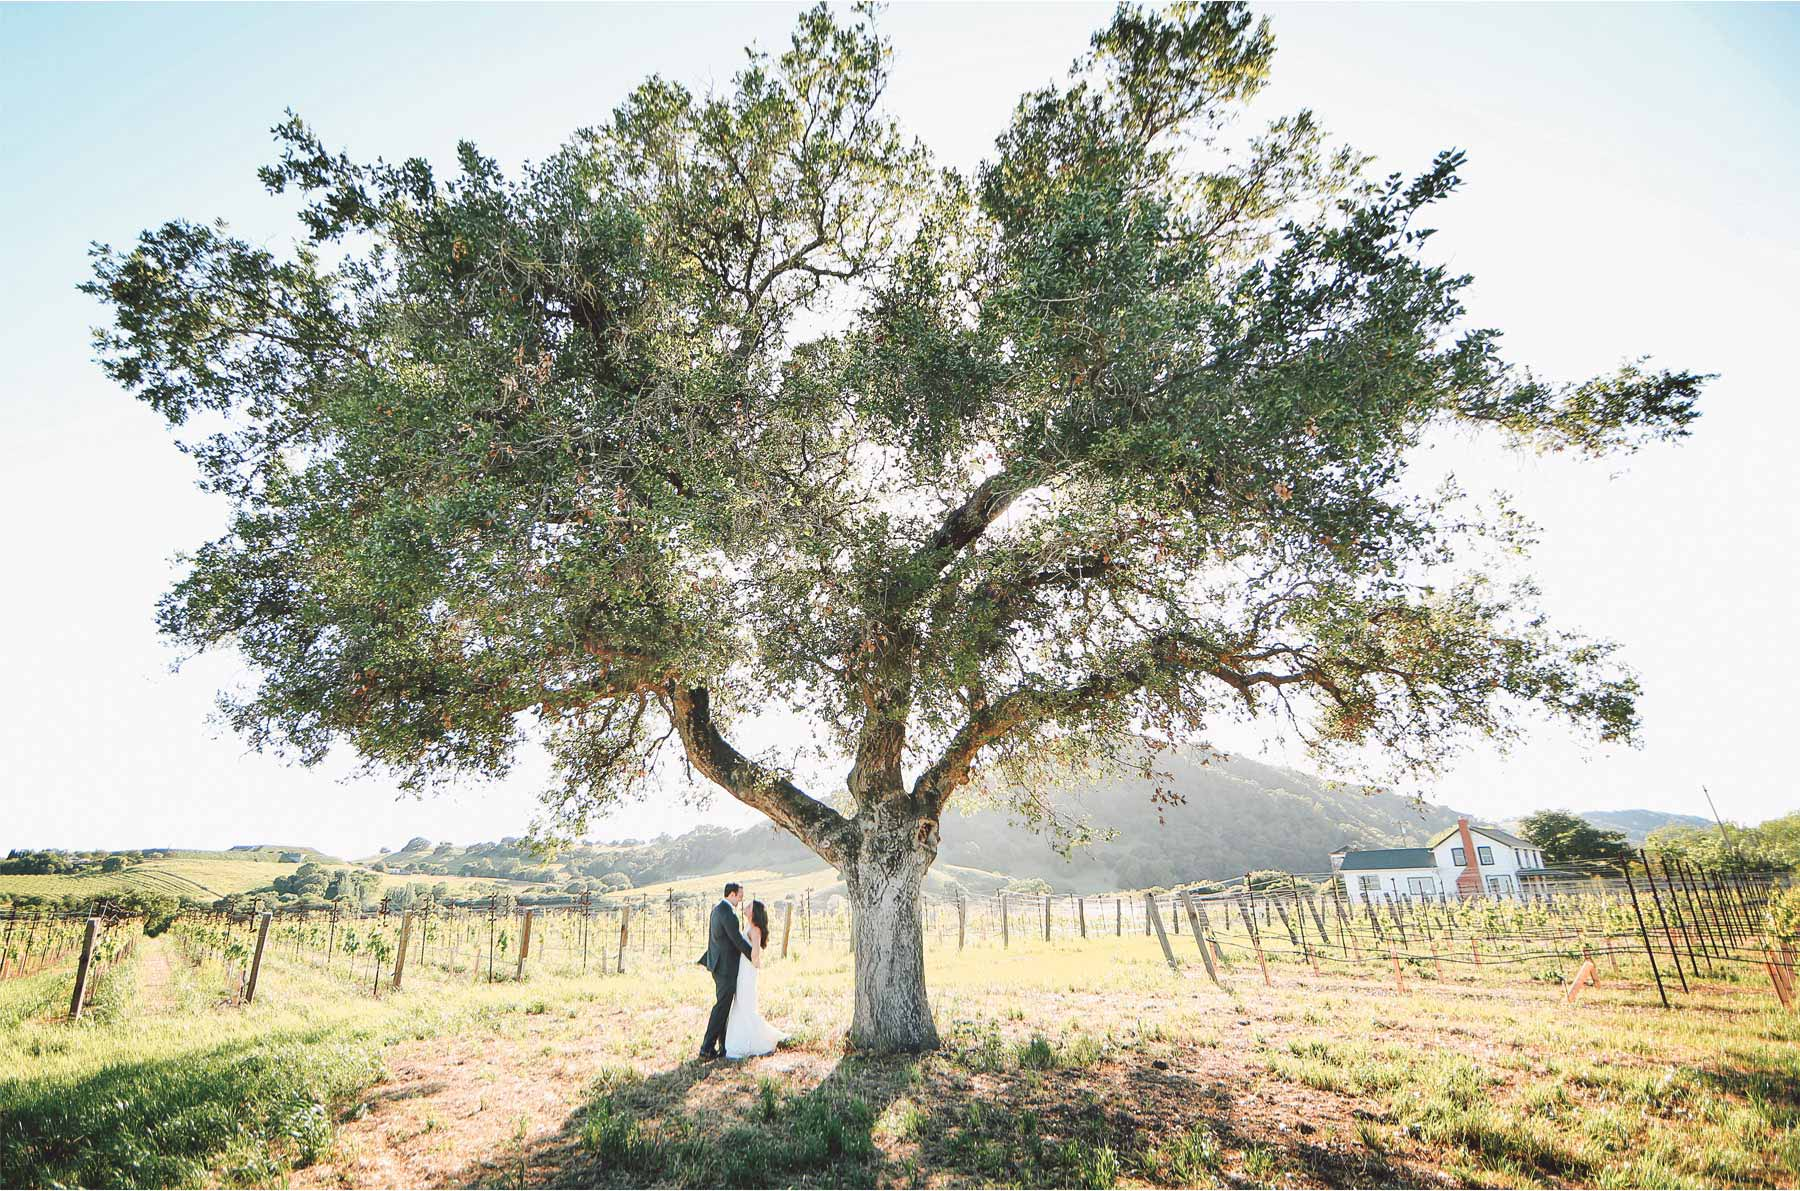 21-Napa-California-Wedding-Photographer-by-Andrew-Vick-Photography-Spring-Destination-Carneros-Resort-and-Spa-Bride-Groom-Vineyard-Winery-Vintage-Alex-and-Roger.jpg